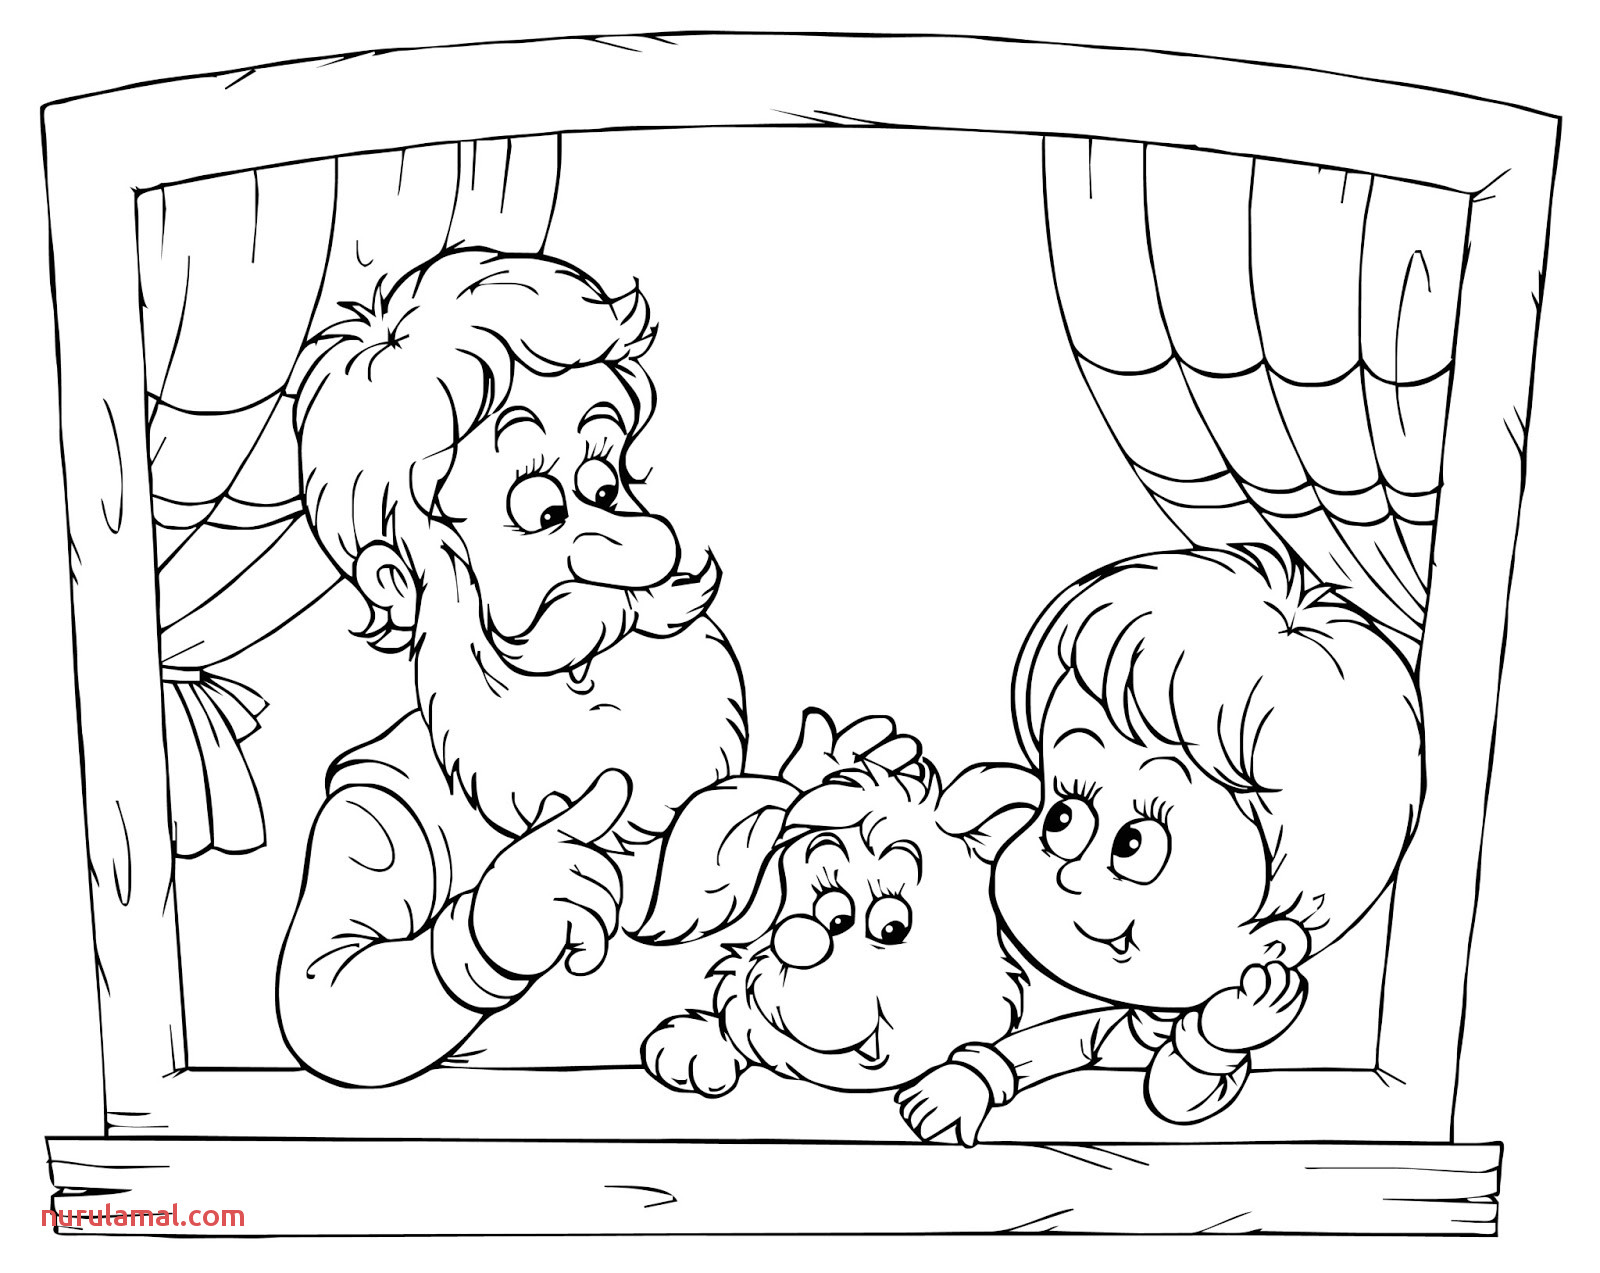 printable coloring pages for kids9